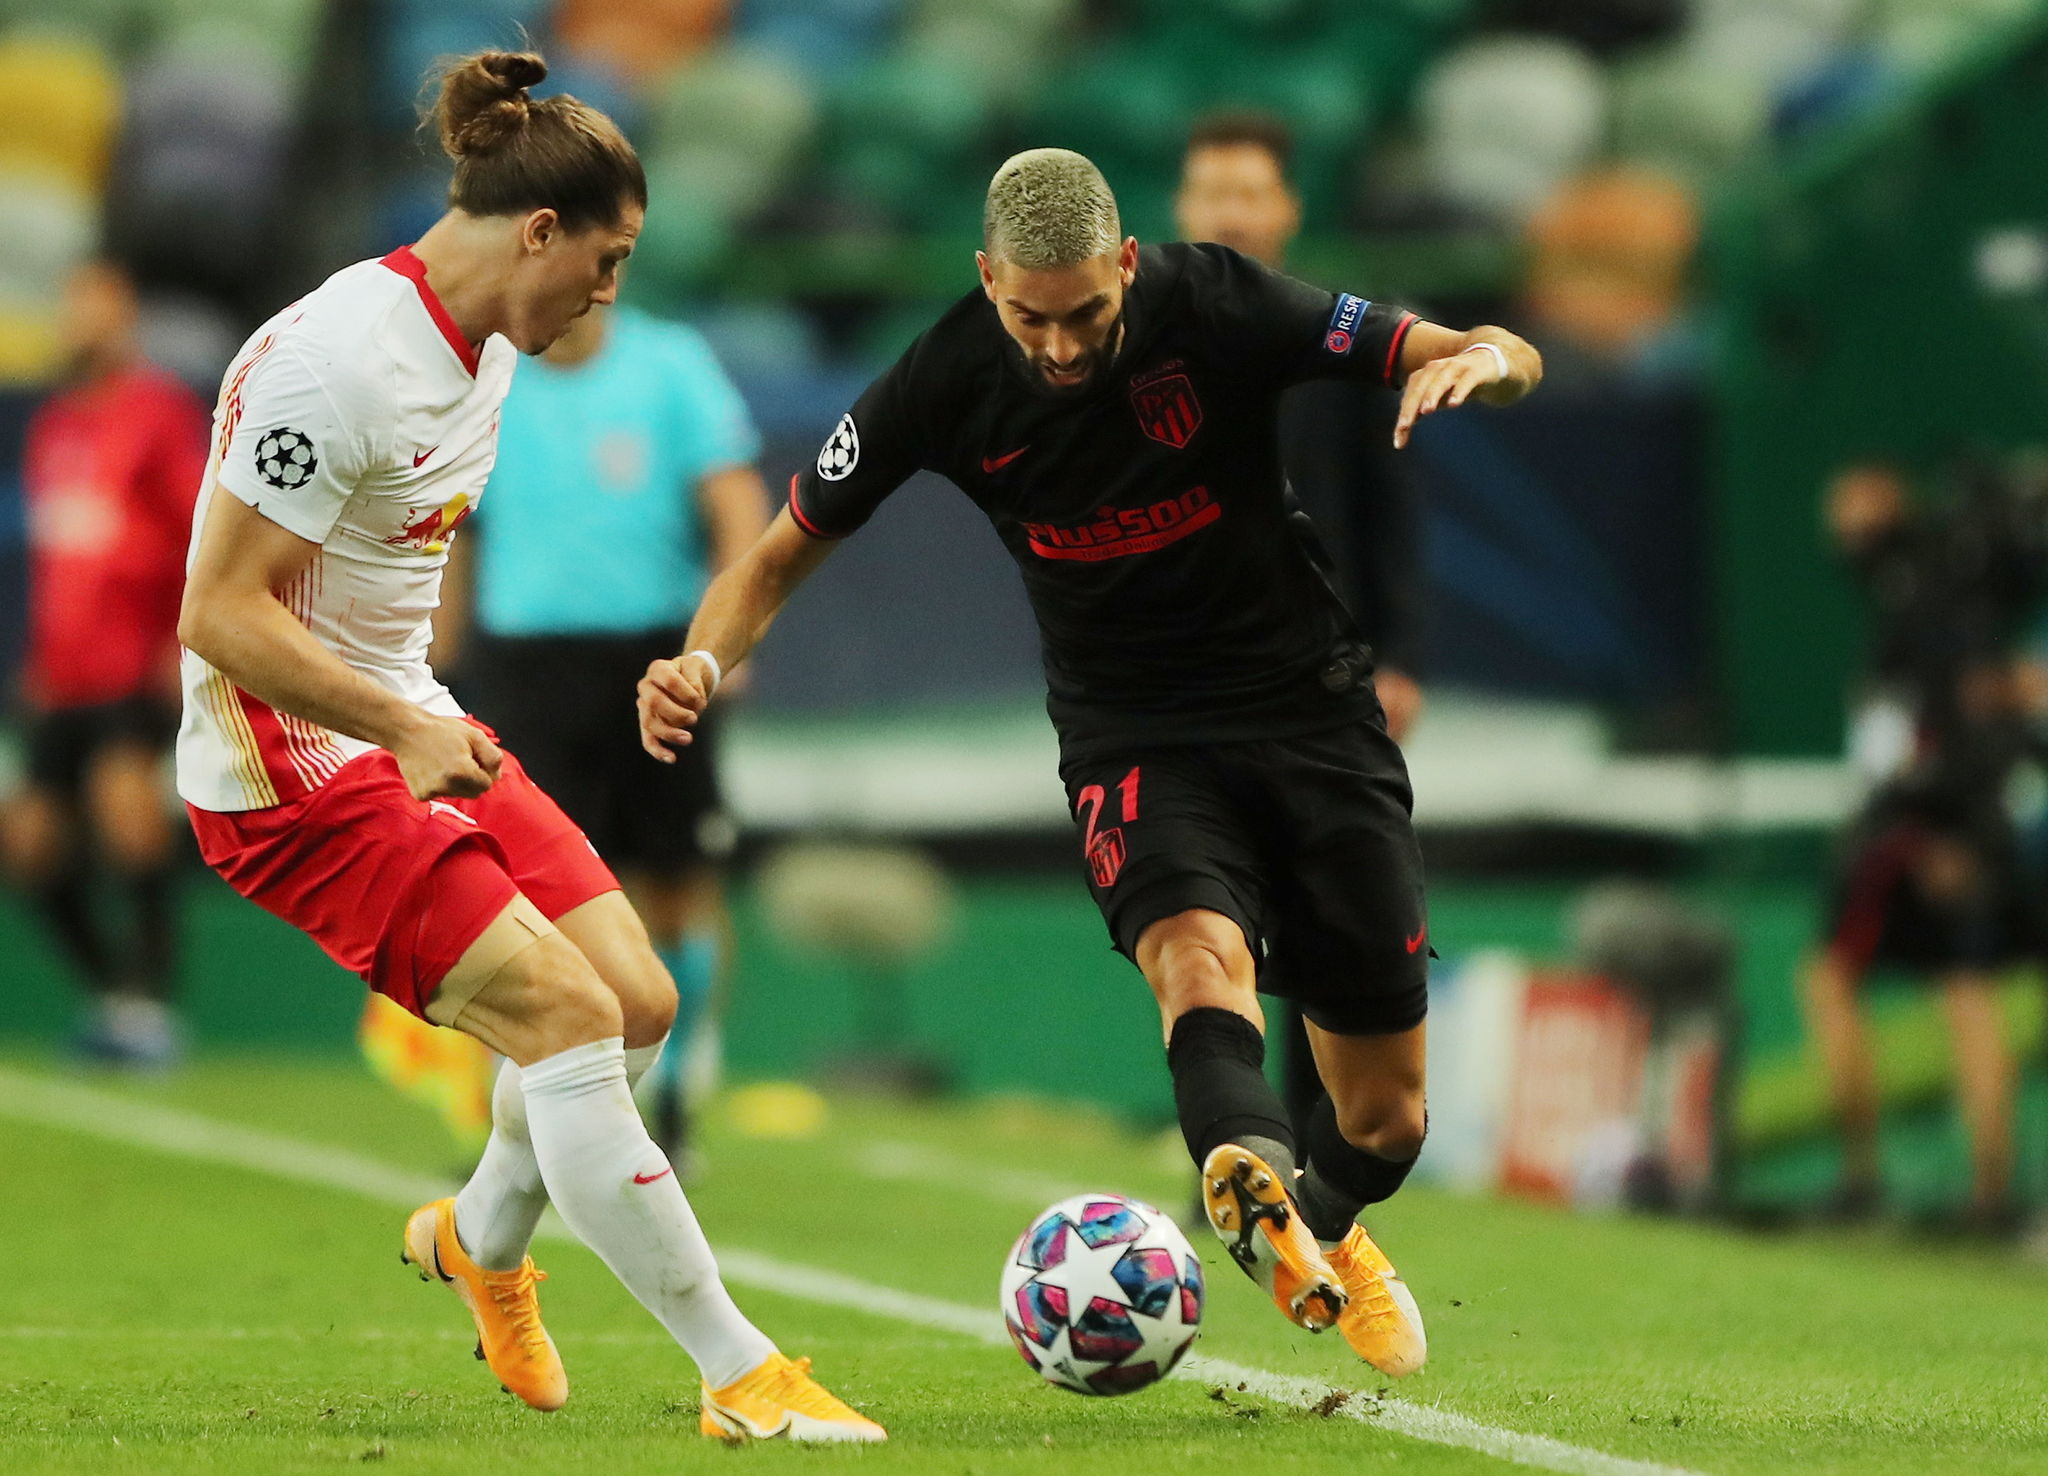 Lisbon (Portugal), 13/08/2020.- Marcel Sabitzer (L) of Leipzig in action against Yannick lt;HIT gt;Carrasco lt;/HIT gt; of Atletico during the UEFA Champions League quarter final match between RB Leipzig and Atletico Madrid in Lisbon, Portugal, 13 August 2020. (Liga de Campeones, Lisboa) EFE/EPA/Miguel A. Lopes / POOL